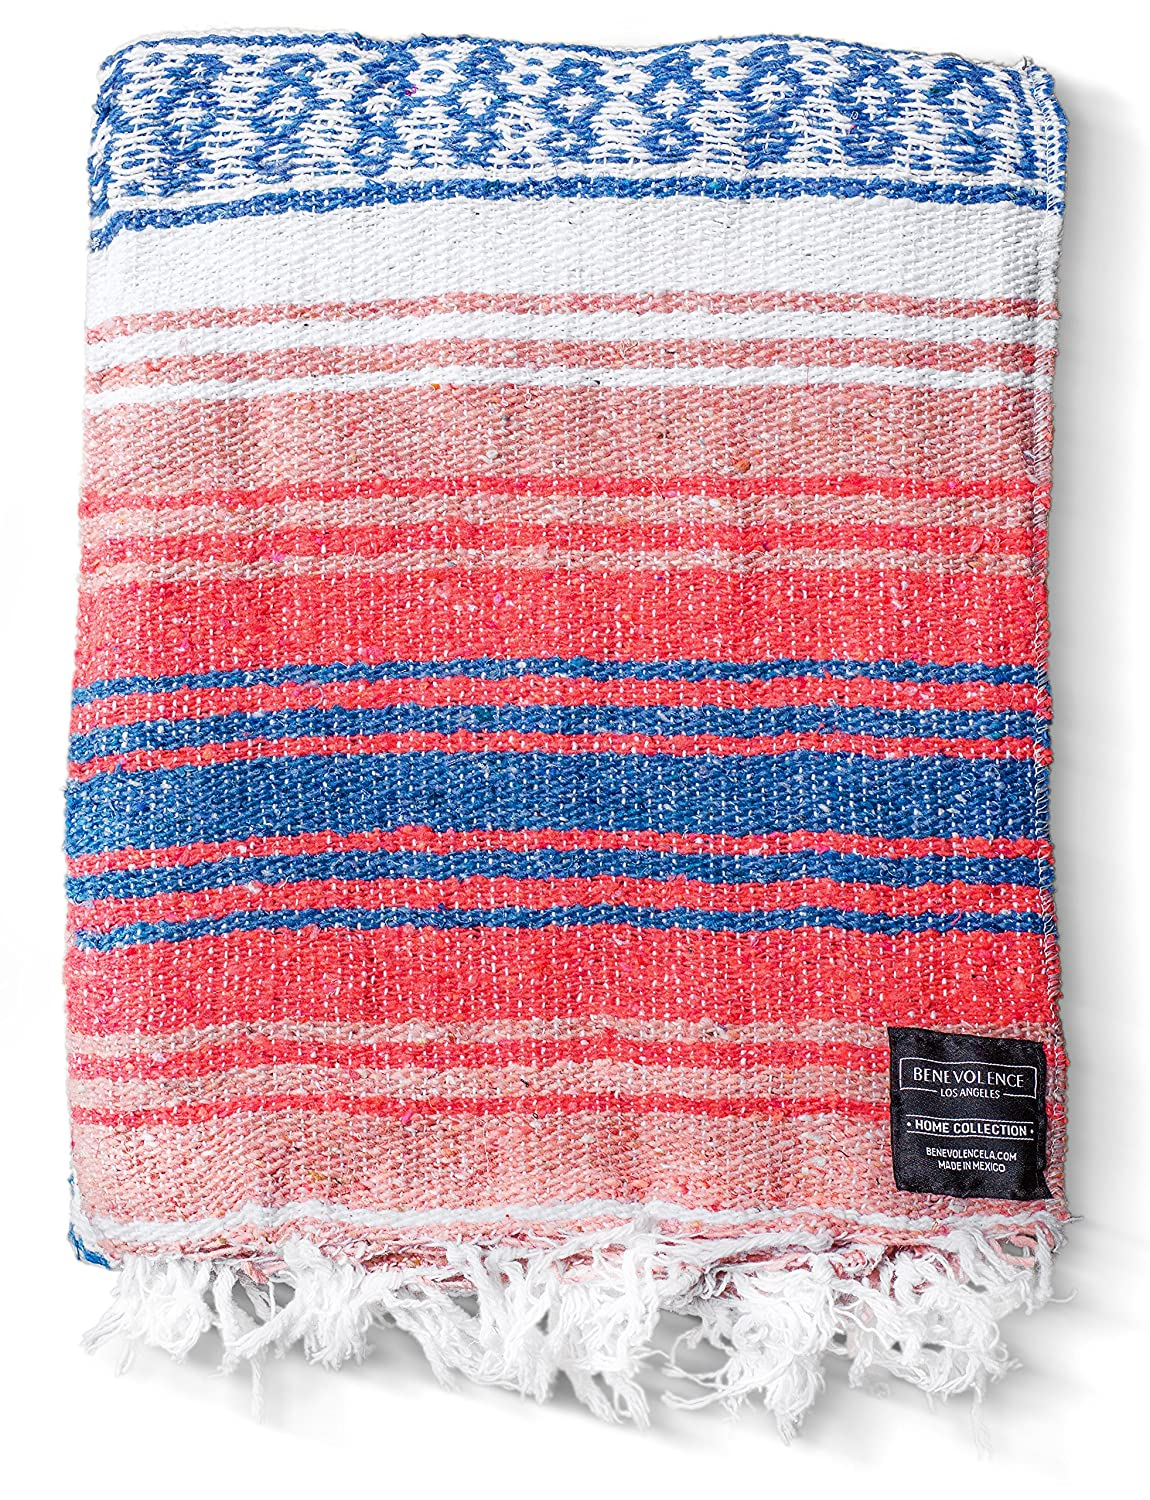 Authentic Falsa Thick Soft Woven Acrylic Yoga Serape or as Beach Throw Picnic Hiking Mint Travel Gray Sand Camping Adventure Blankets in Pink Sky Blue Pillow Mexican Blanket